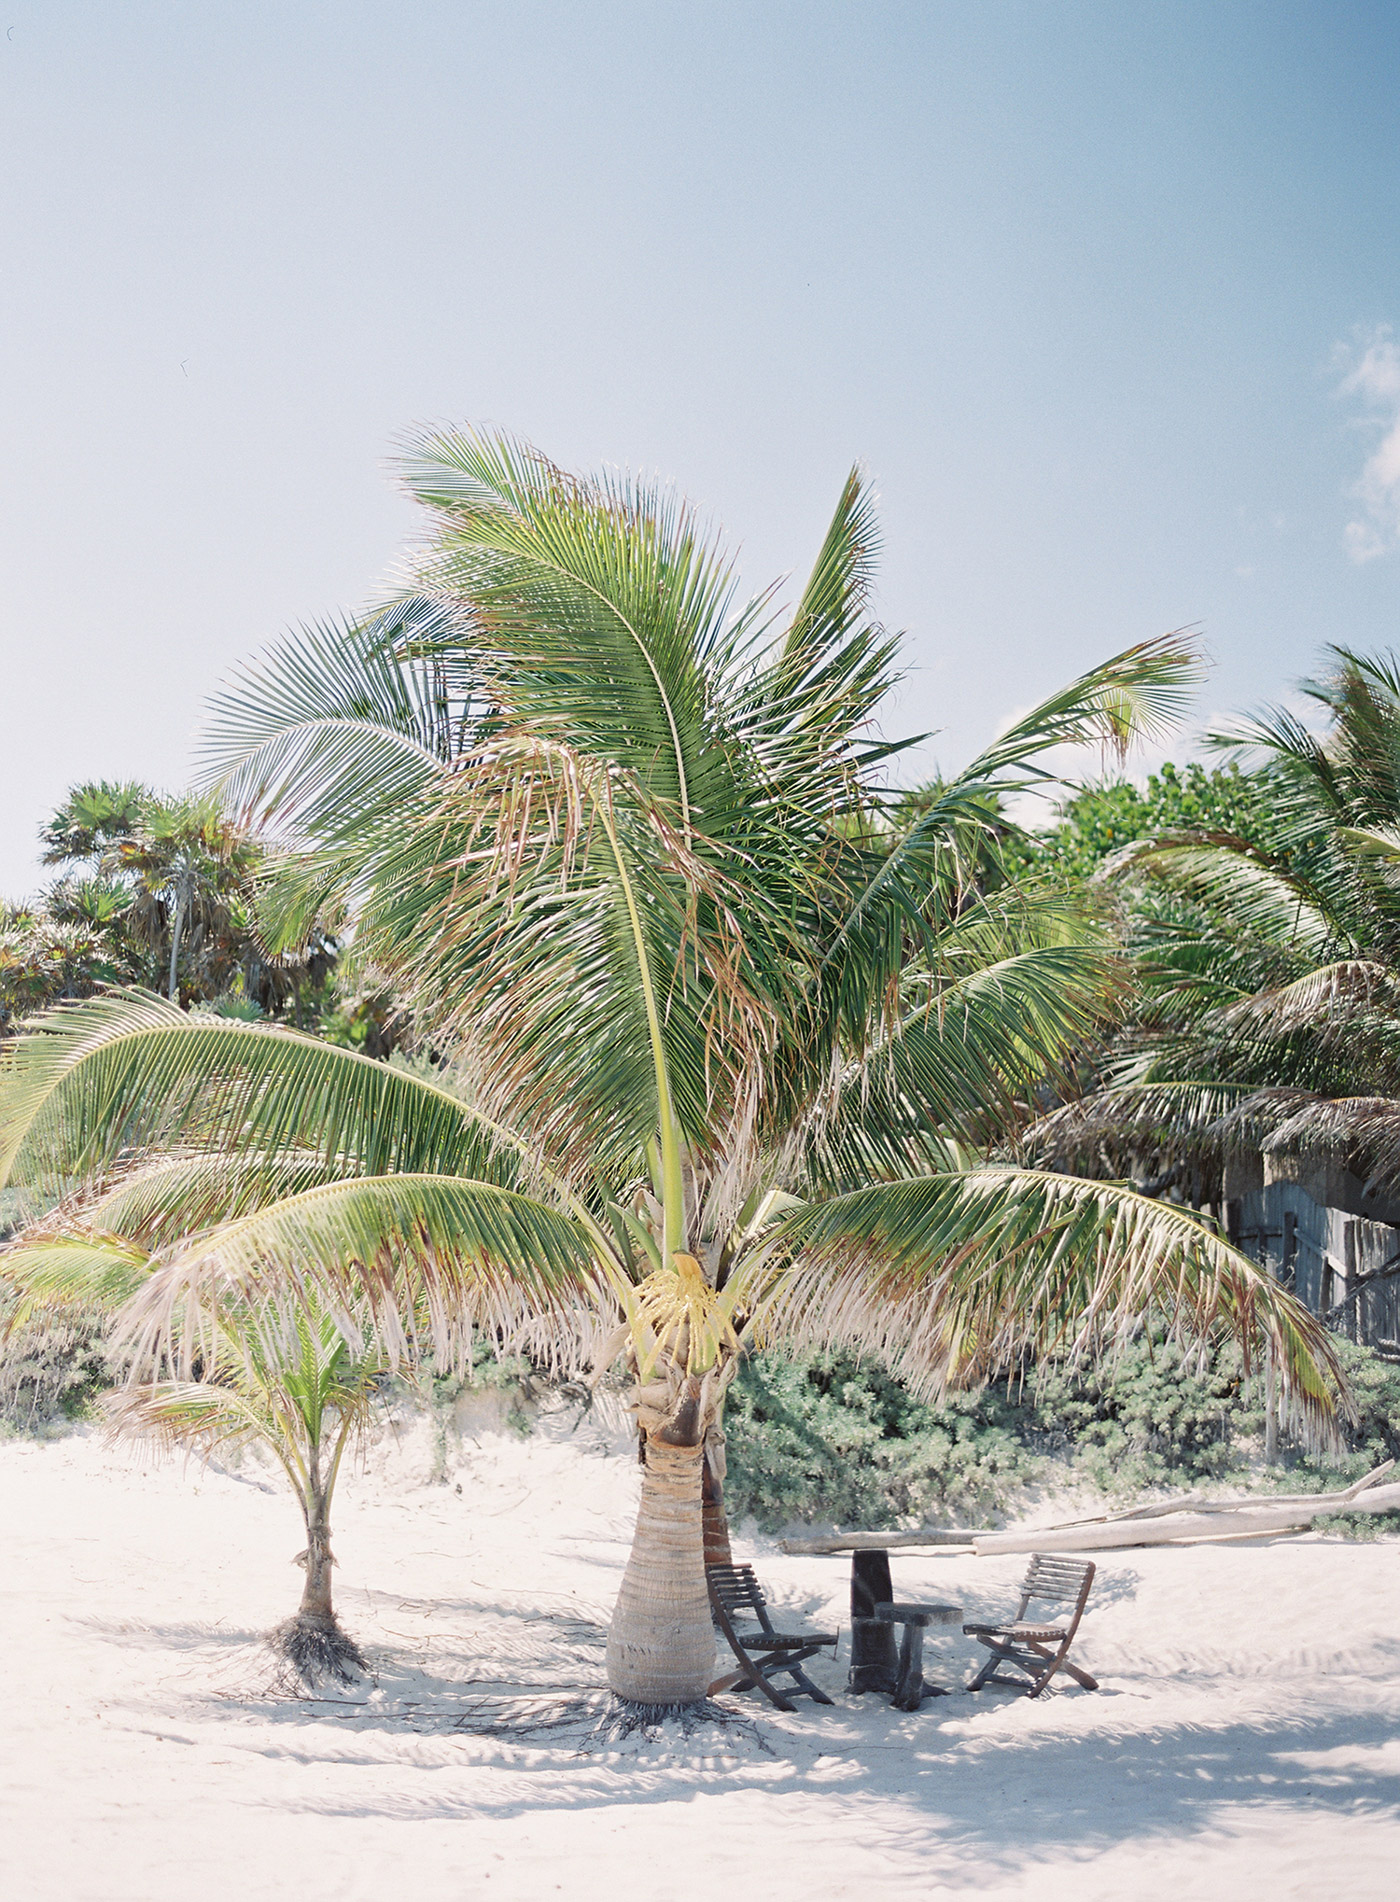 palm tree next to small sitting area on beach